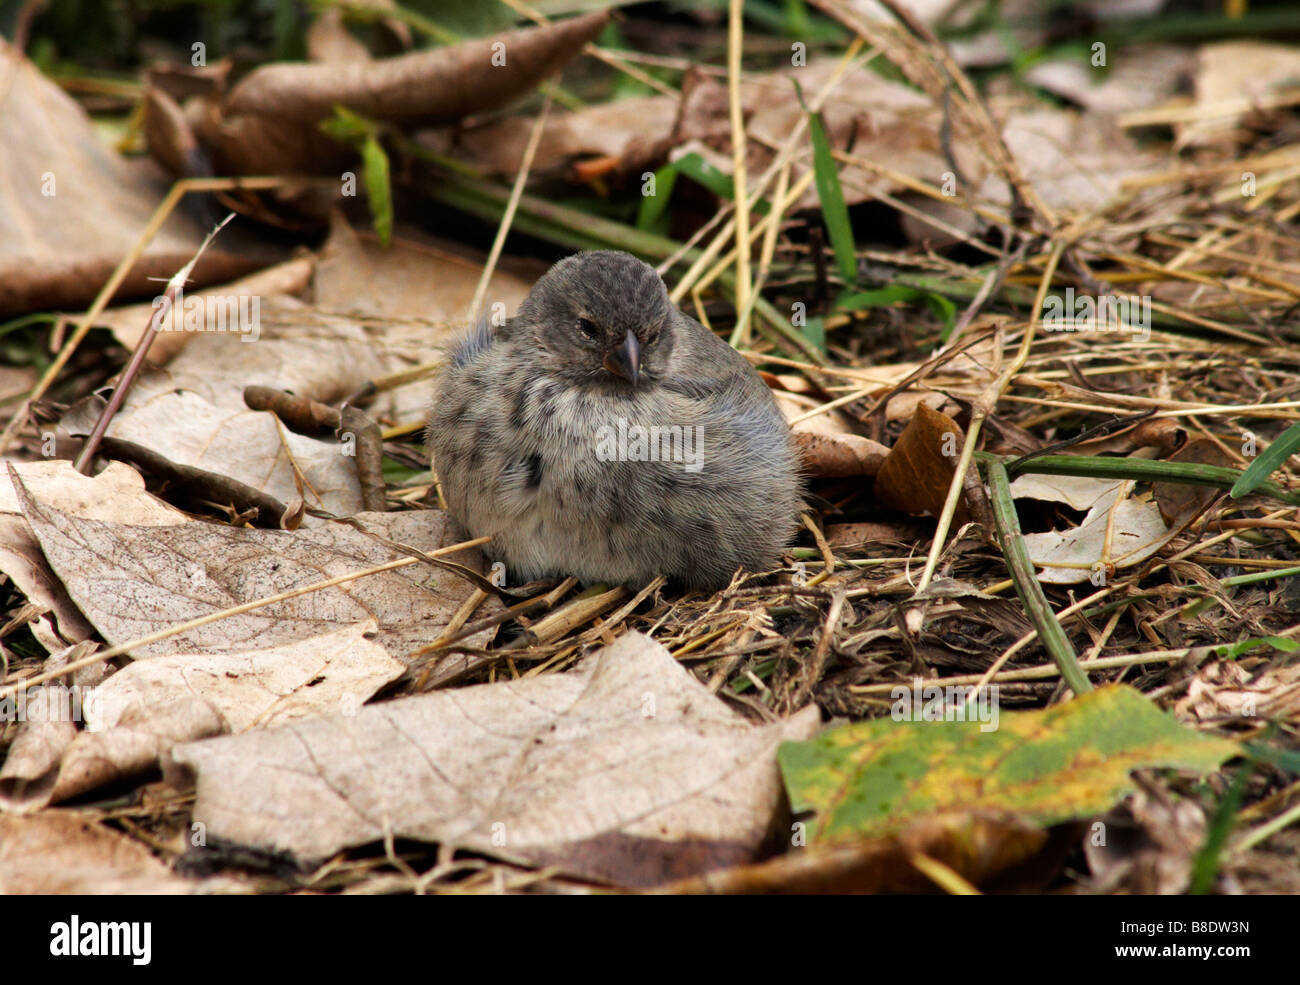 Darwin vegetarian finch, Platyspiza crassirostris, sat on ground at Puerto Ayora Highlands, Santa Cruz Island, Galapagos - Stock Image